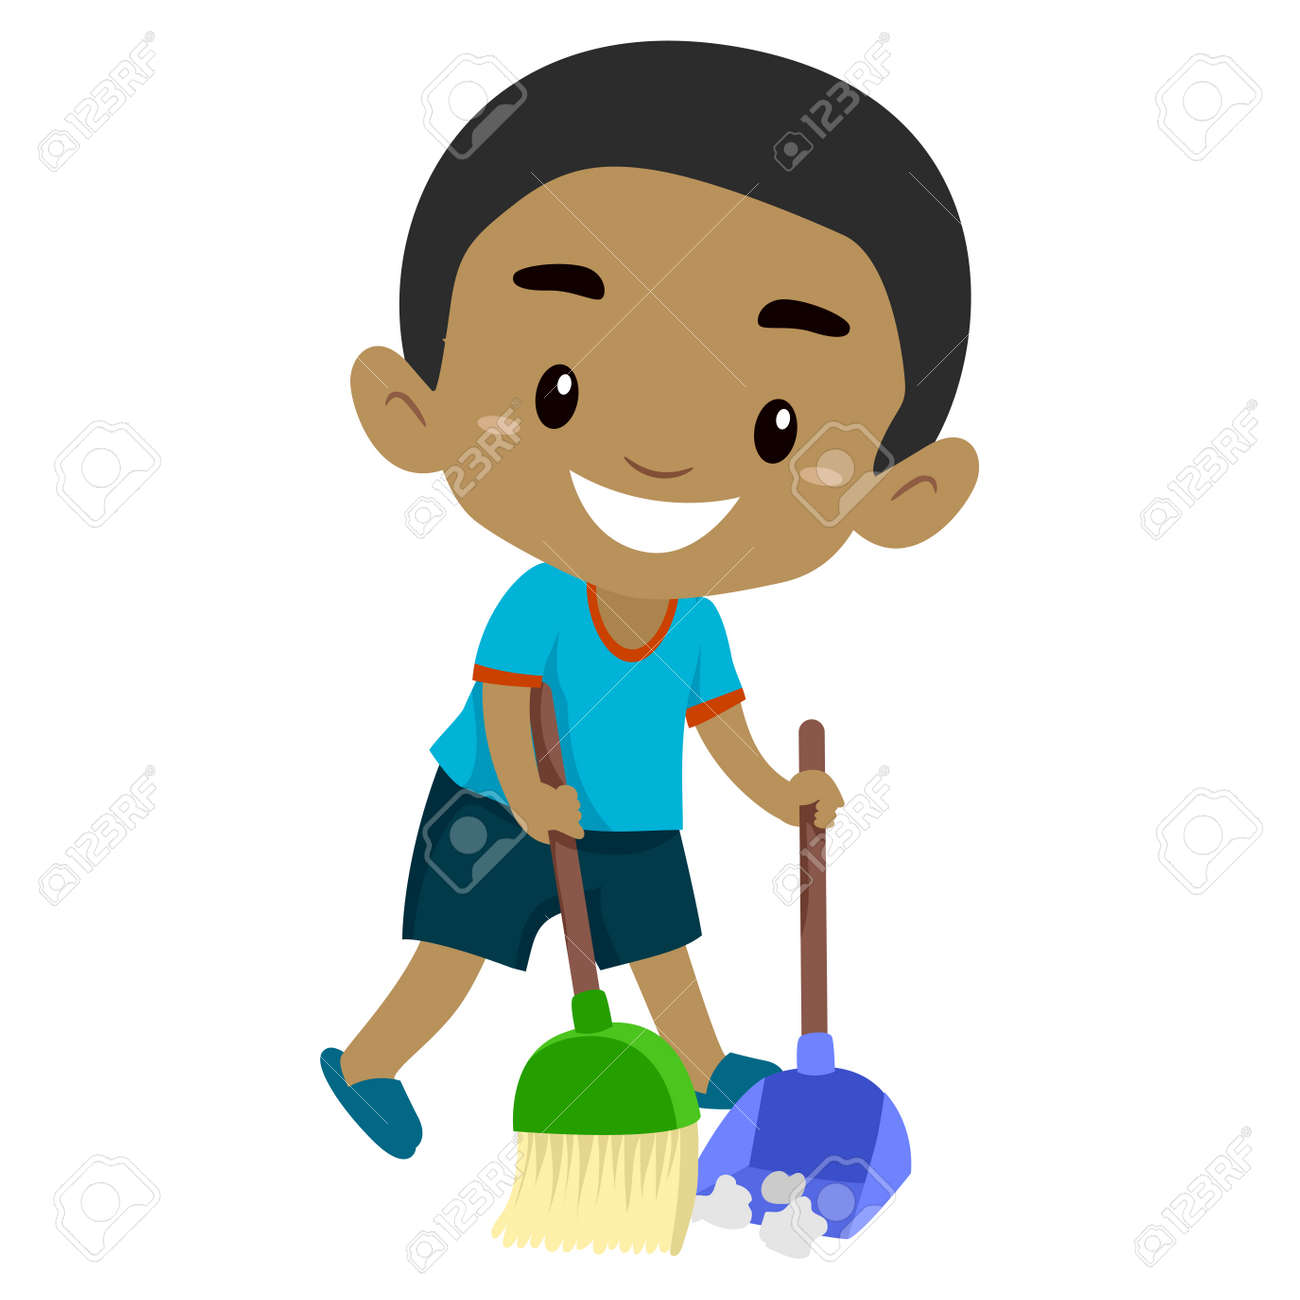 black boy kid sweeping the floor royalty free cliparts vectors and stock illustration image 134481597 black boy kid sweeping the floor